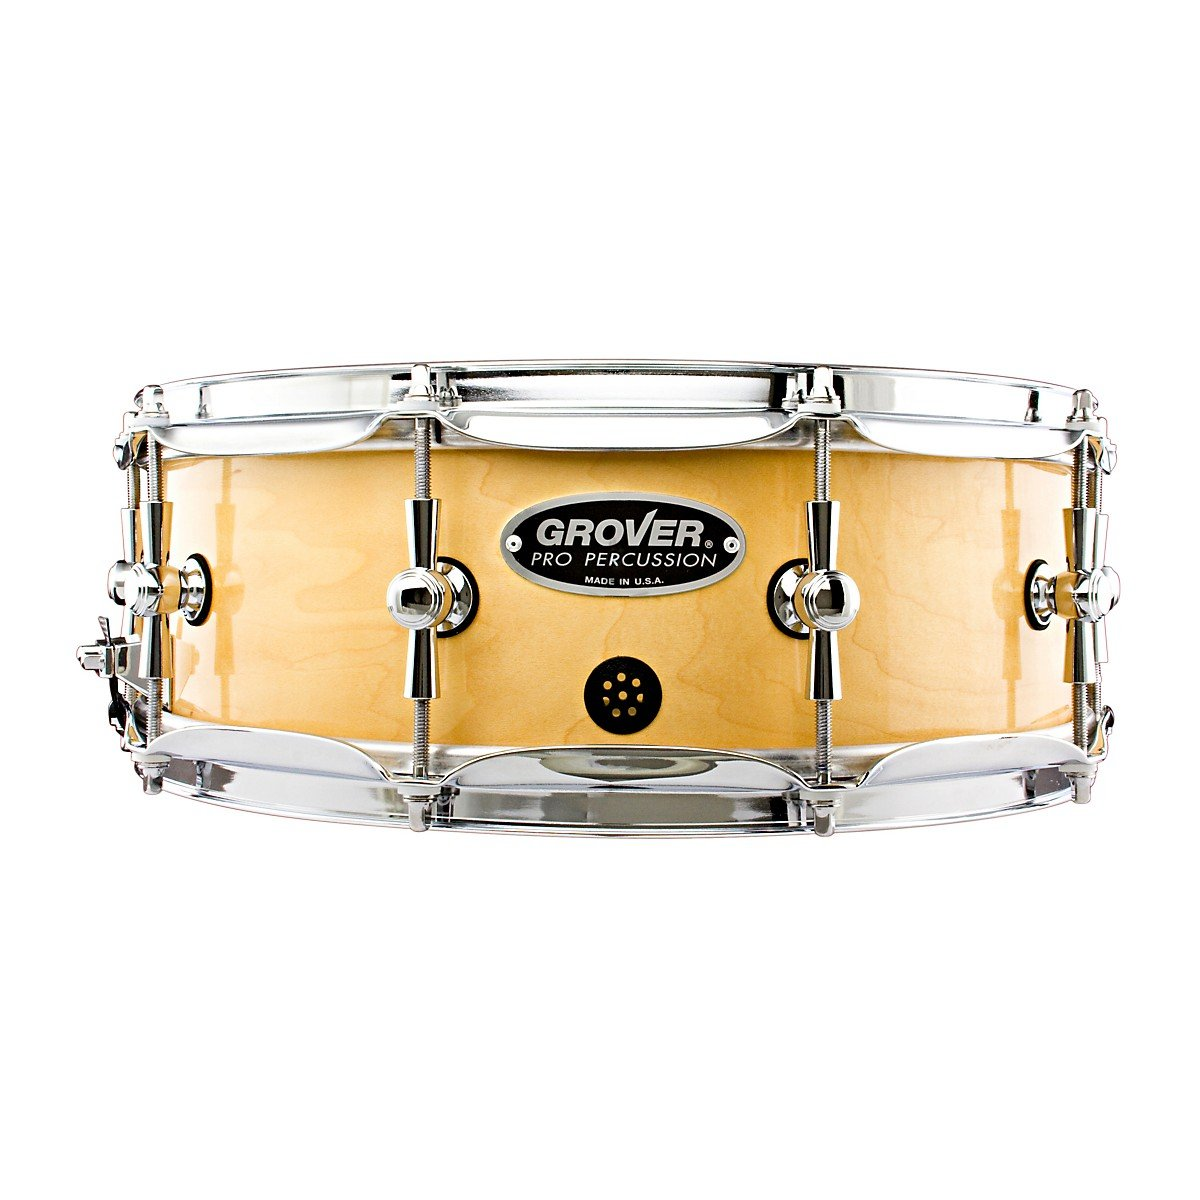 Grover Pro GSX Concert Snare Drum Natural Lacquer 14 x 5 in. by Grover Pro